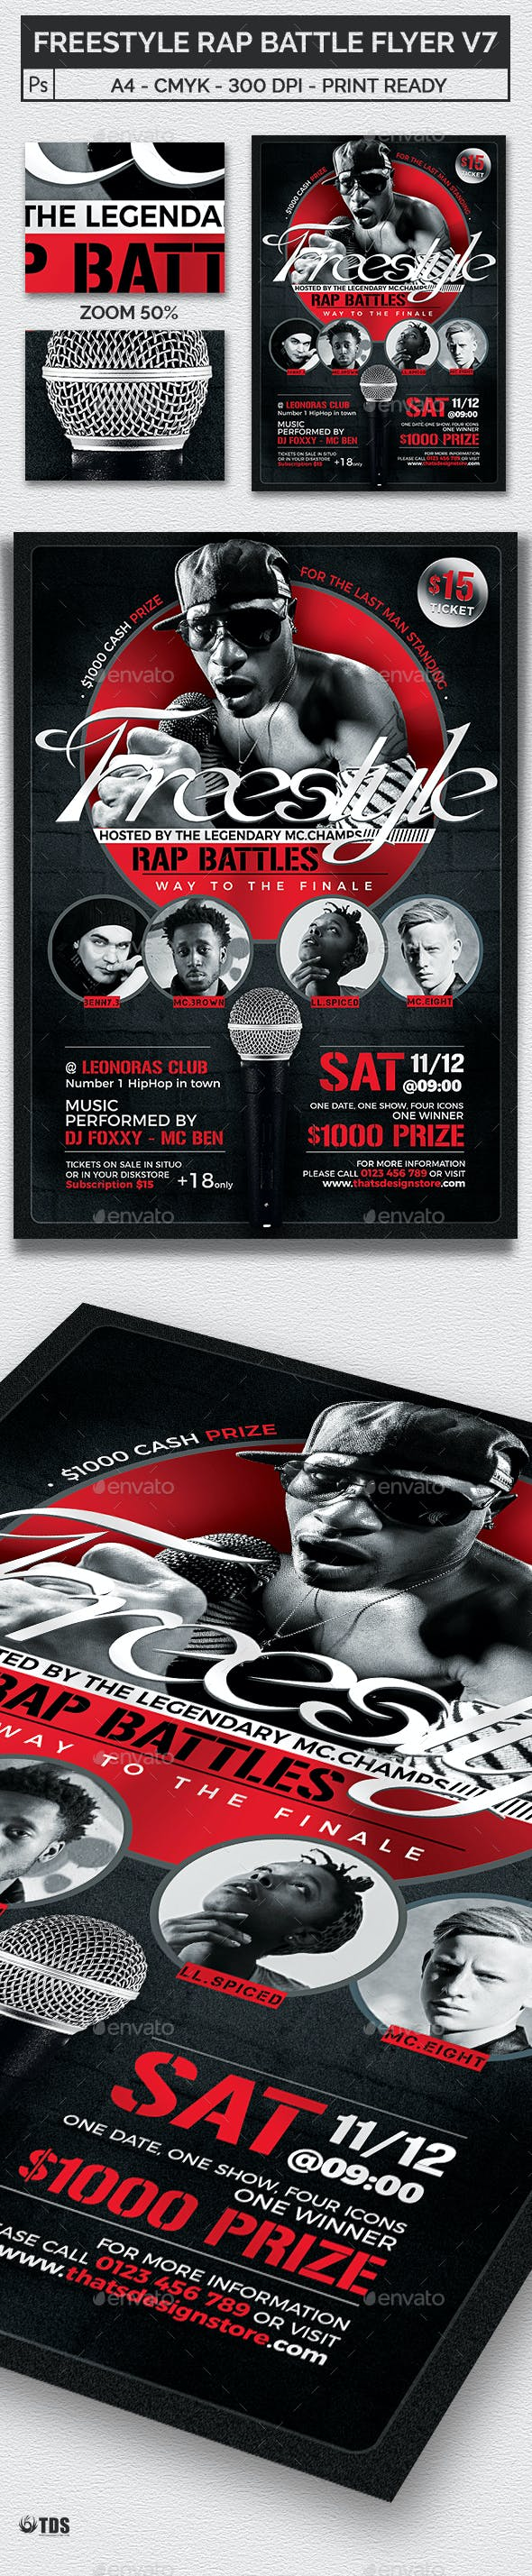 freestyle rap battle flyer template v7 by lou606 graphicriver